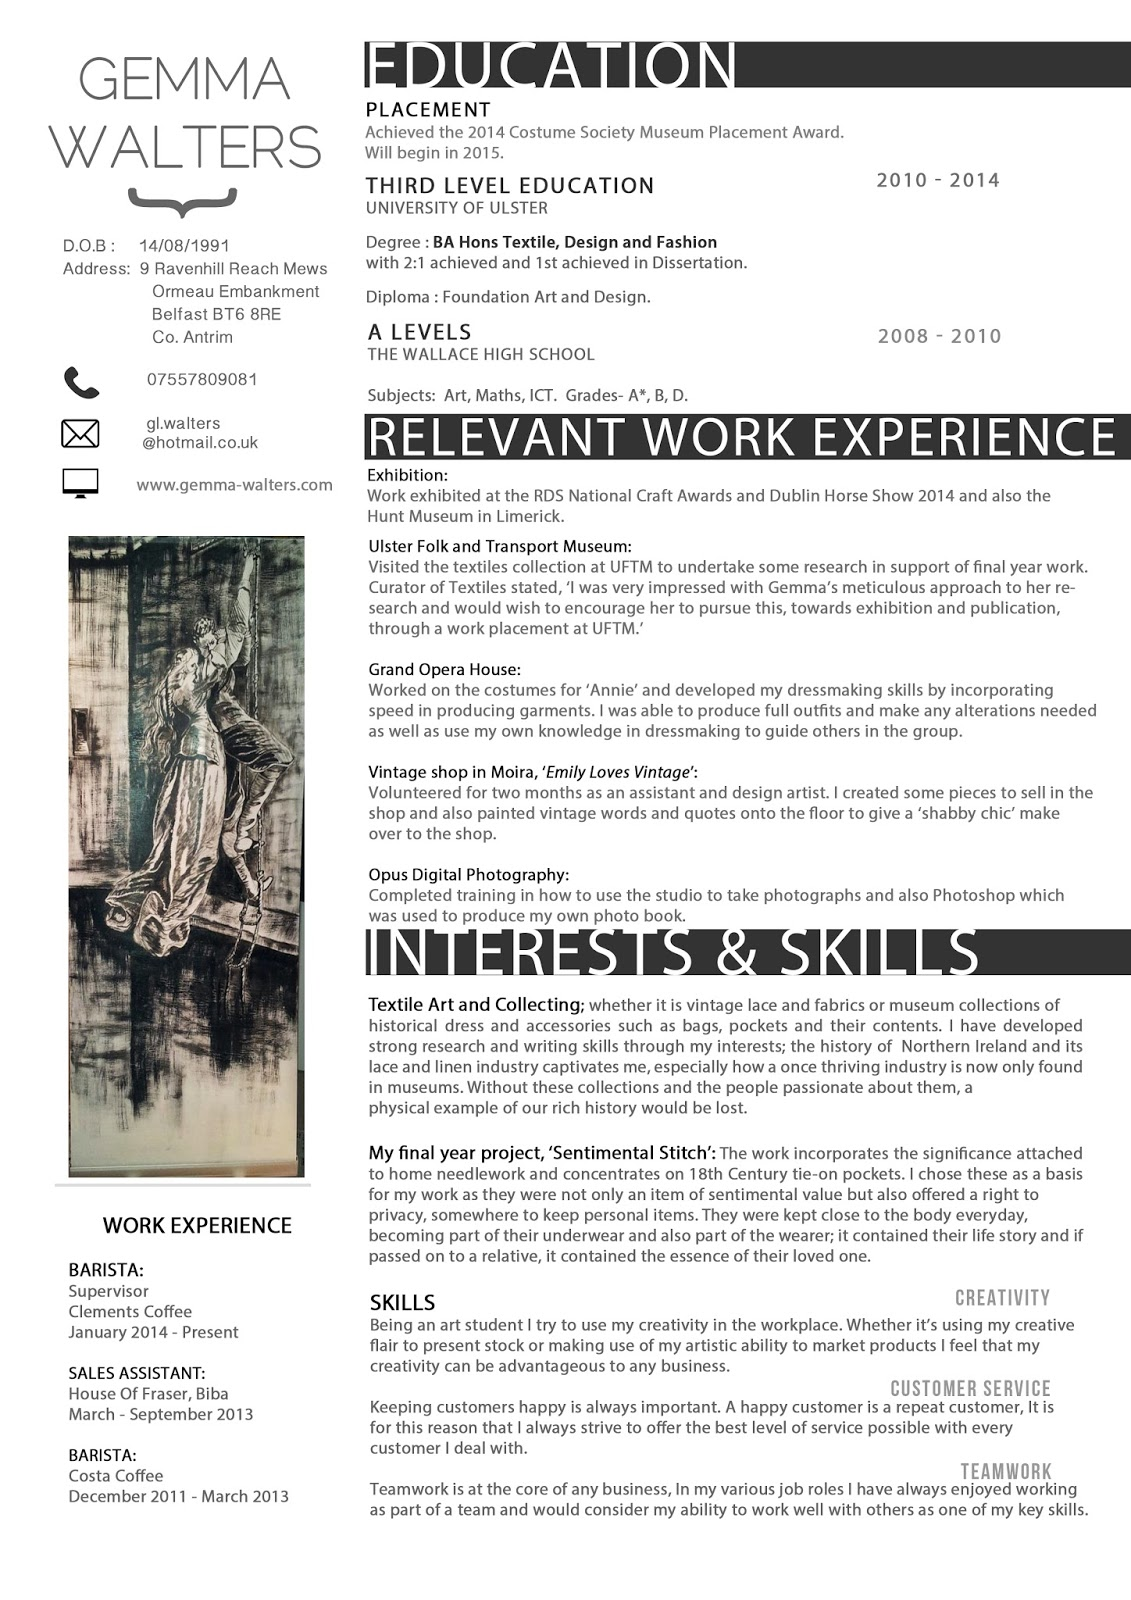 Sample Resume For Web Designer Experienced Possessions Tipss Und Vorlagen